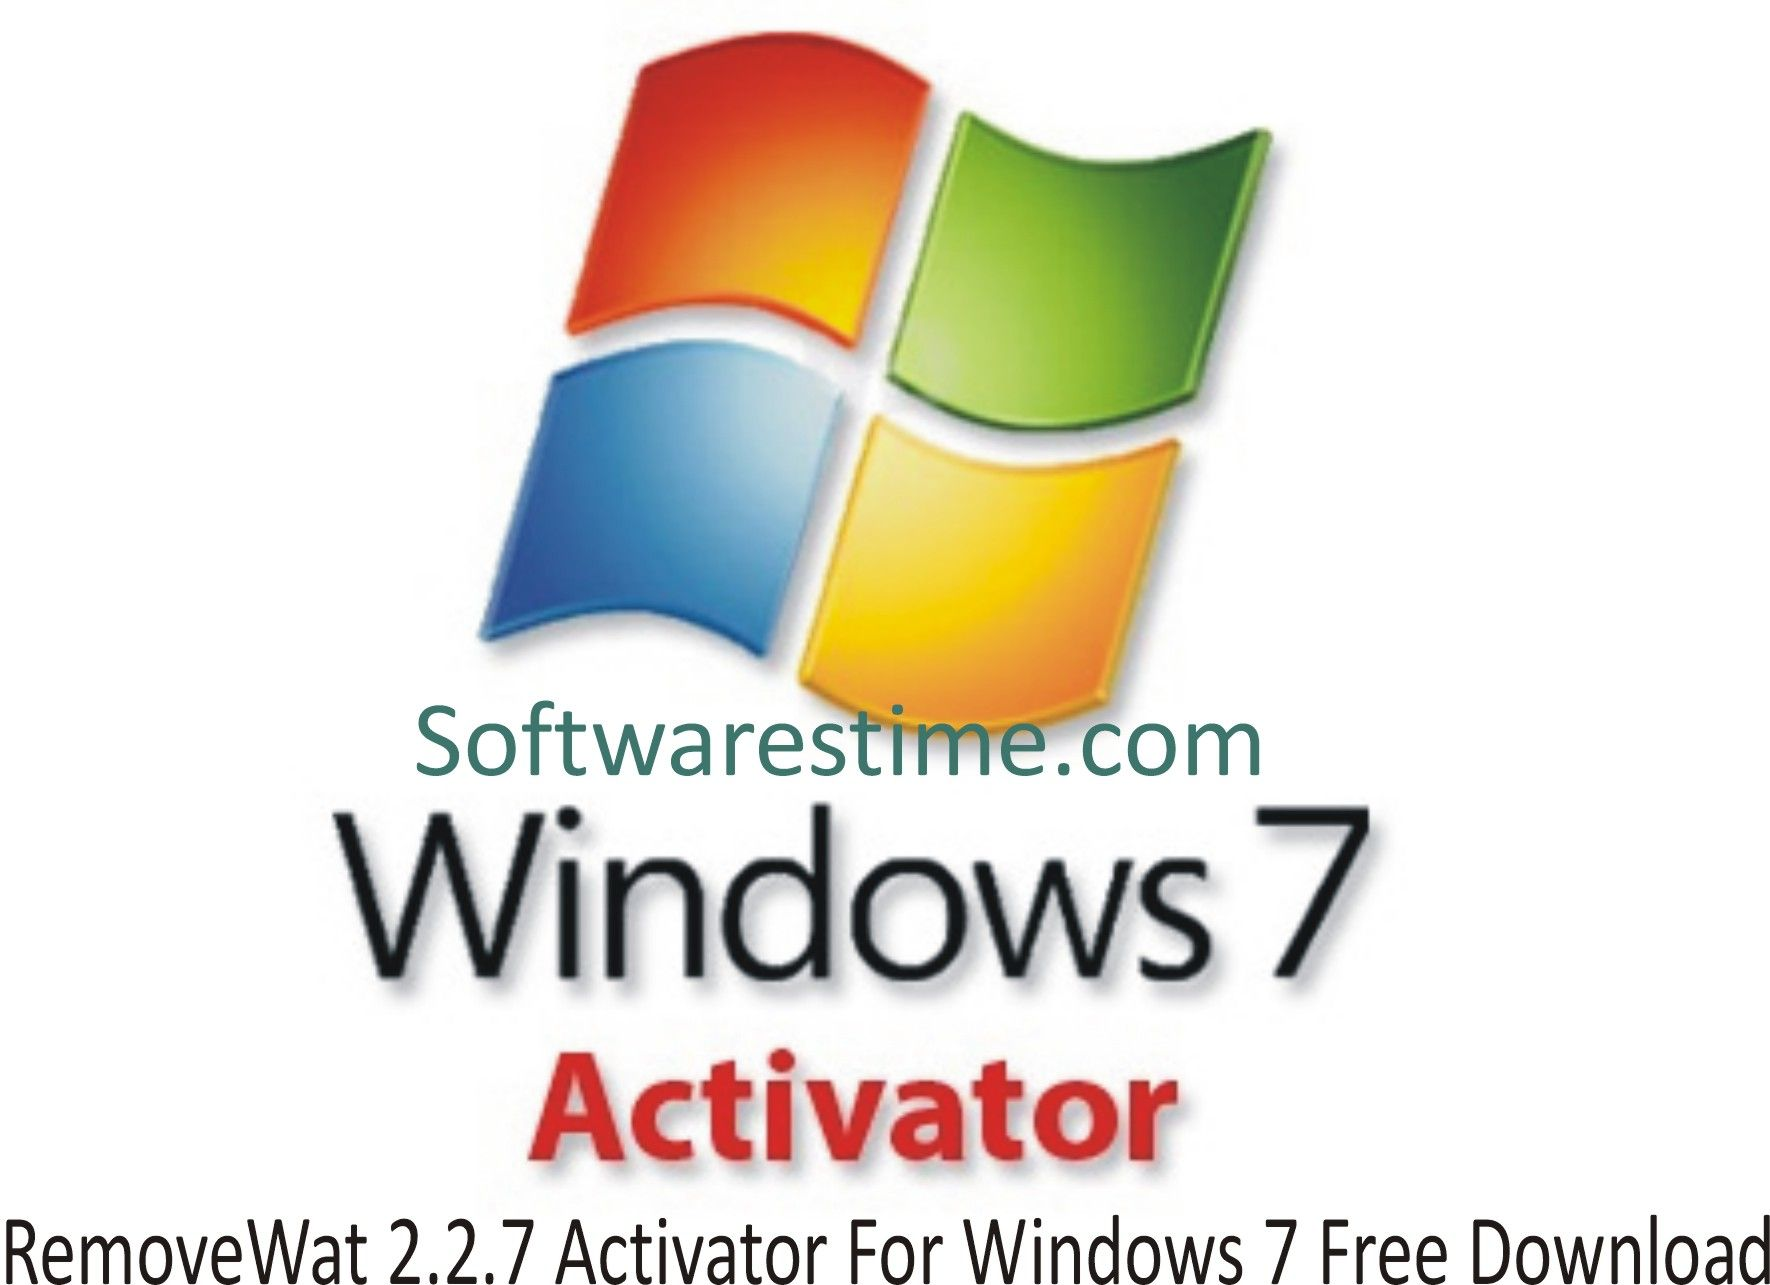 Removewat 2 2 7 Activator For Windows 7 Free Download Free Download Windows Software